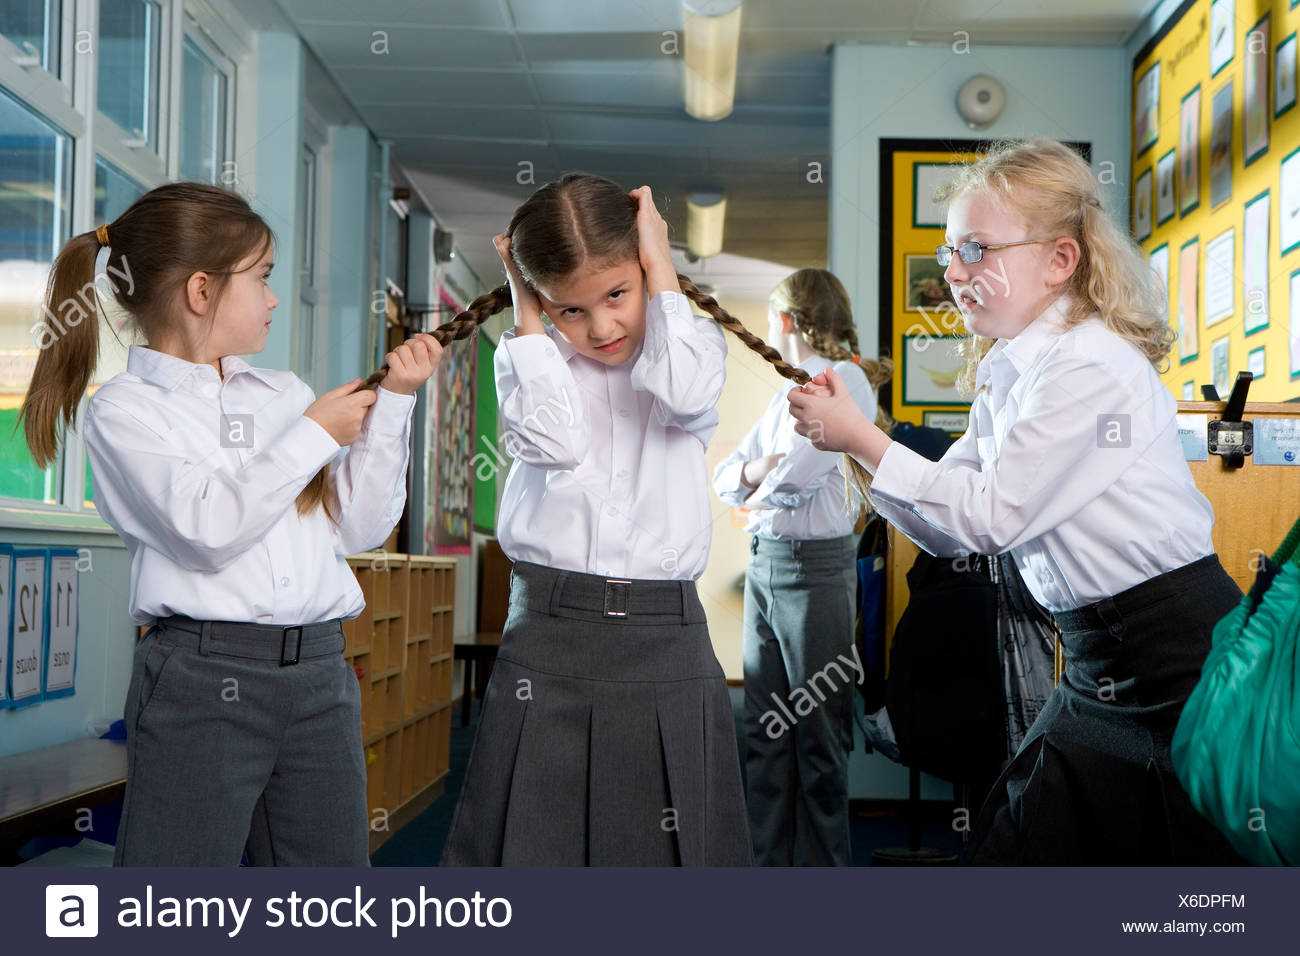 Mean, aggressive school girls teasing and pulling classmates braids - Stock Image